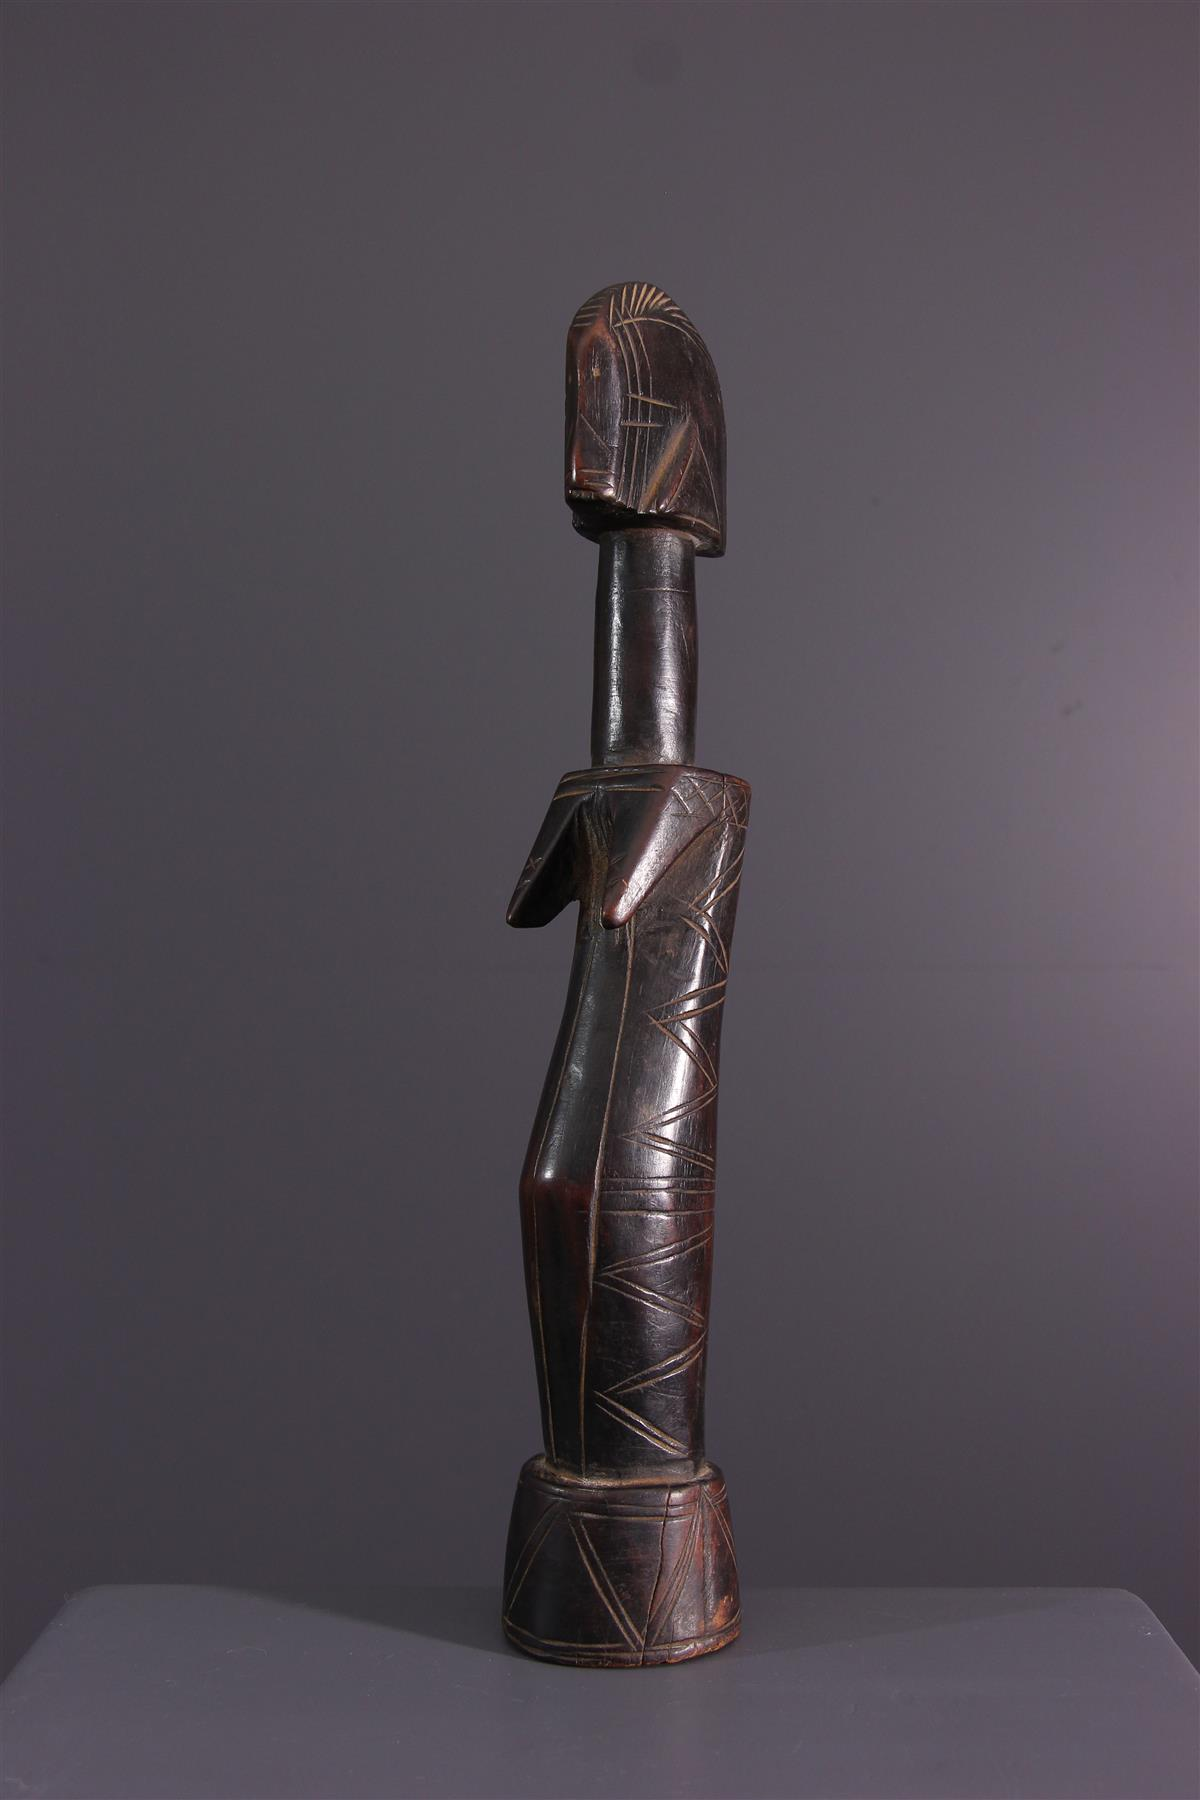 Mossi doll - African art